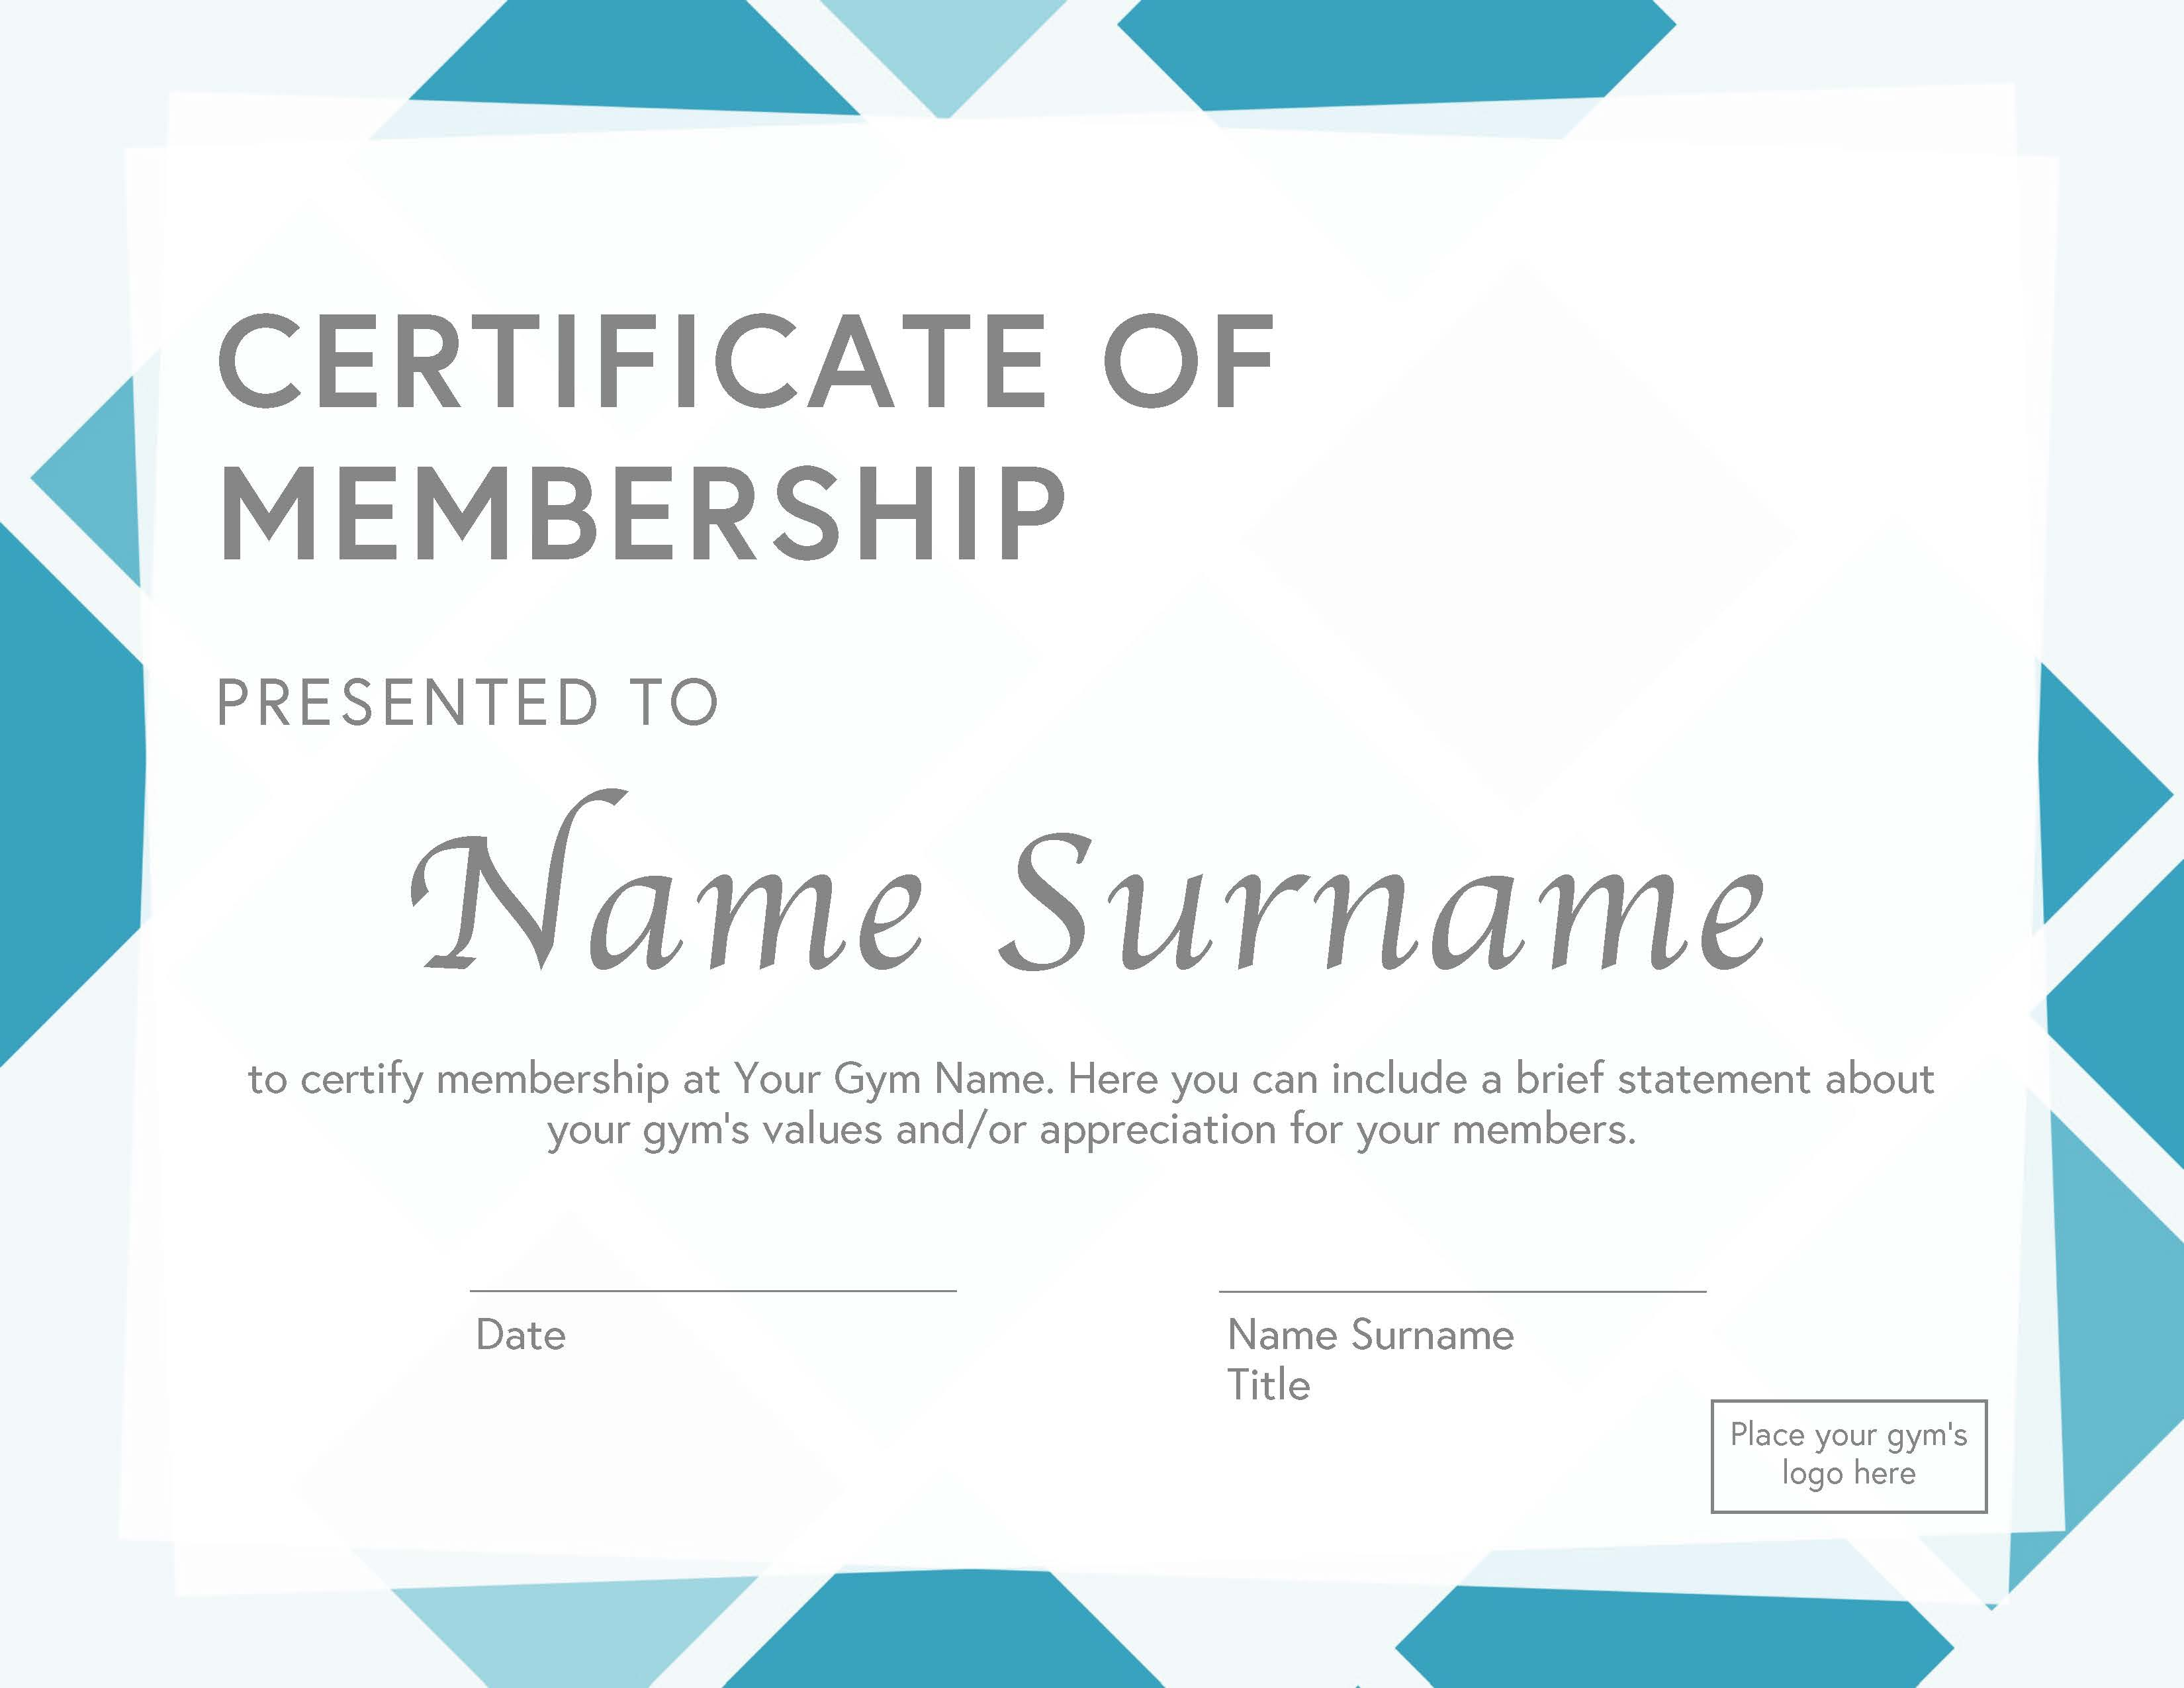 21 Membership Certificate Templates for Any Occasion (Free Download) For Running Certificates Templates Free